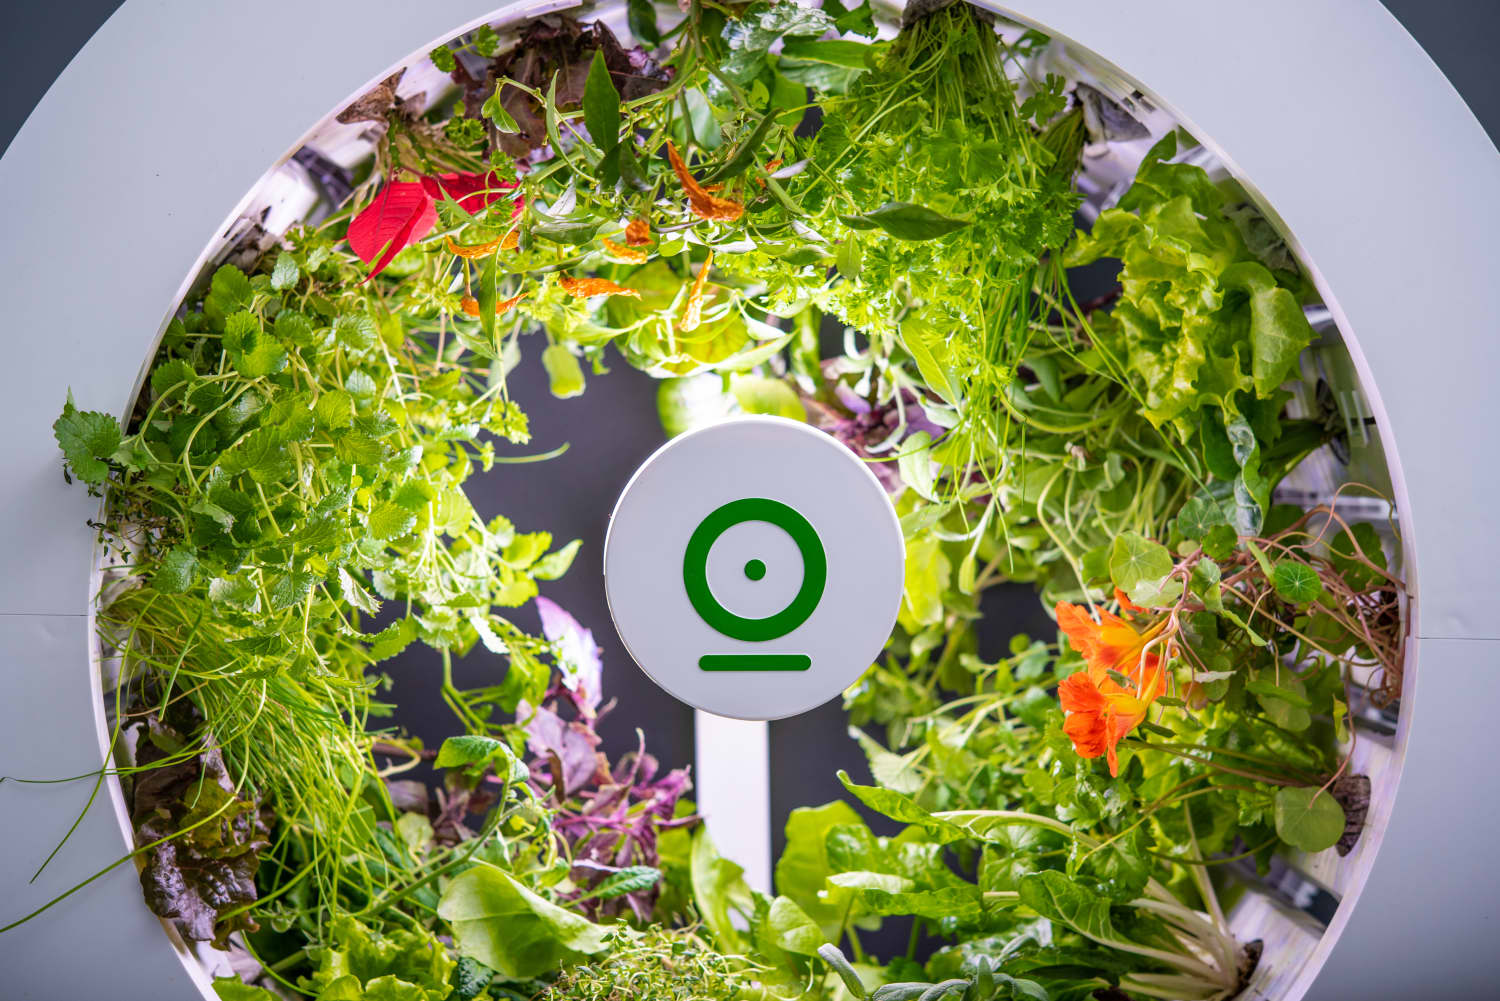 This Indoor Garden Grows Vegetables for You, No Green Thumb Necessary